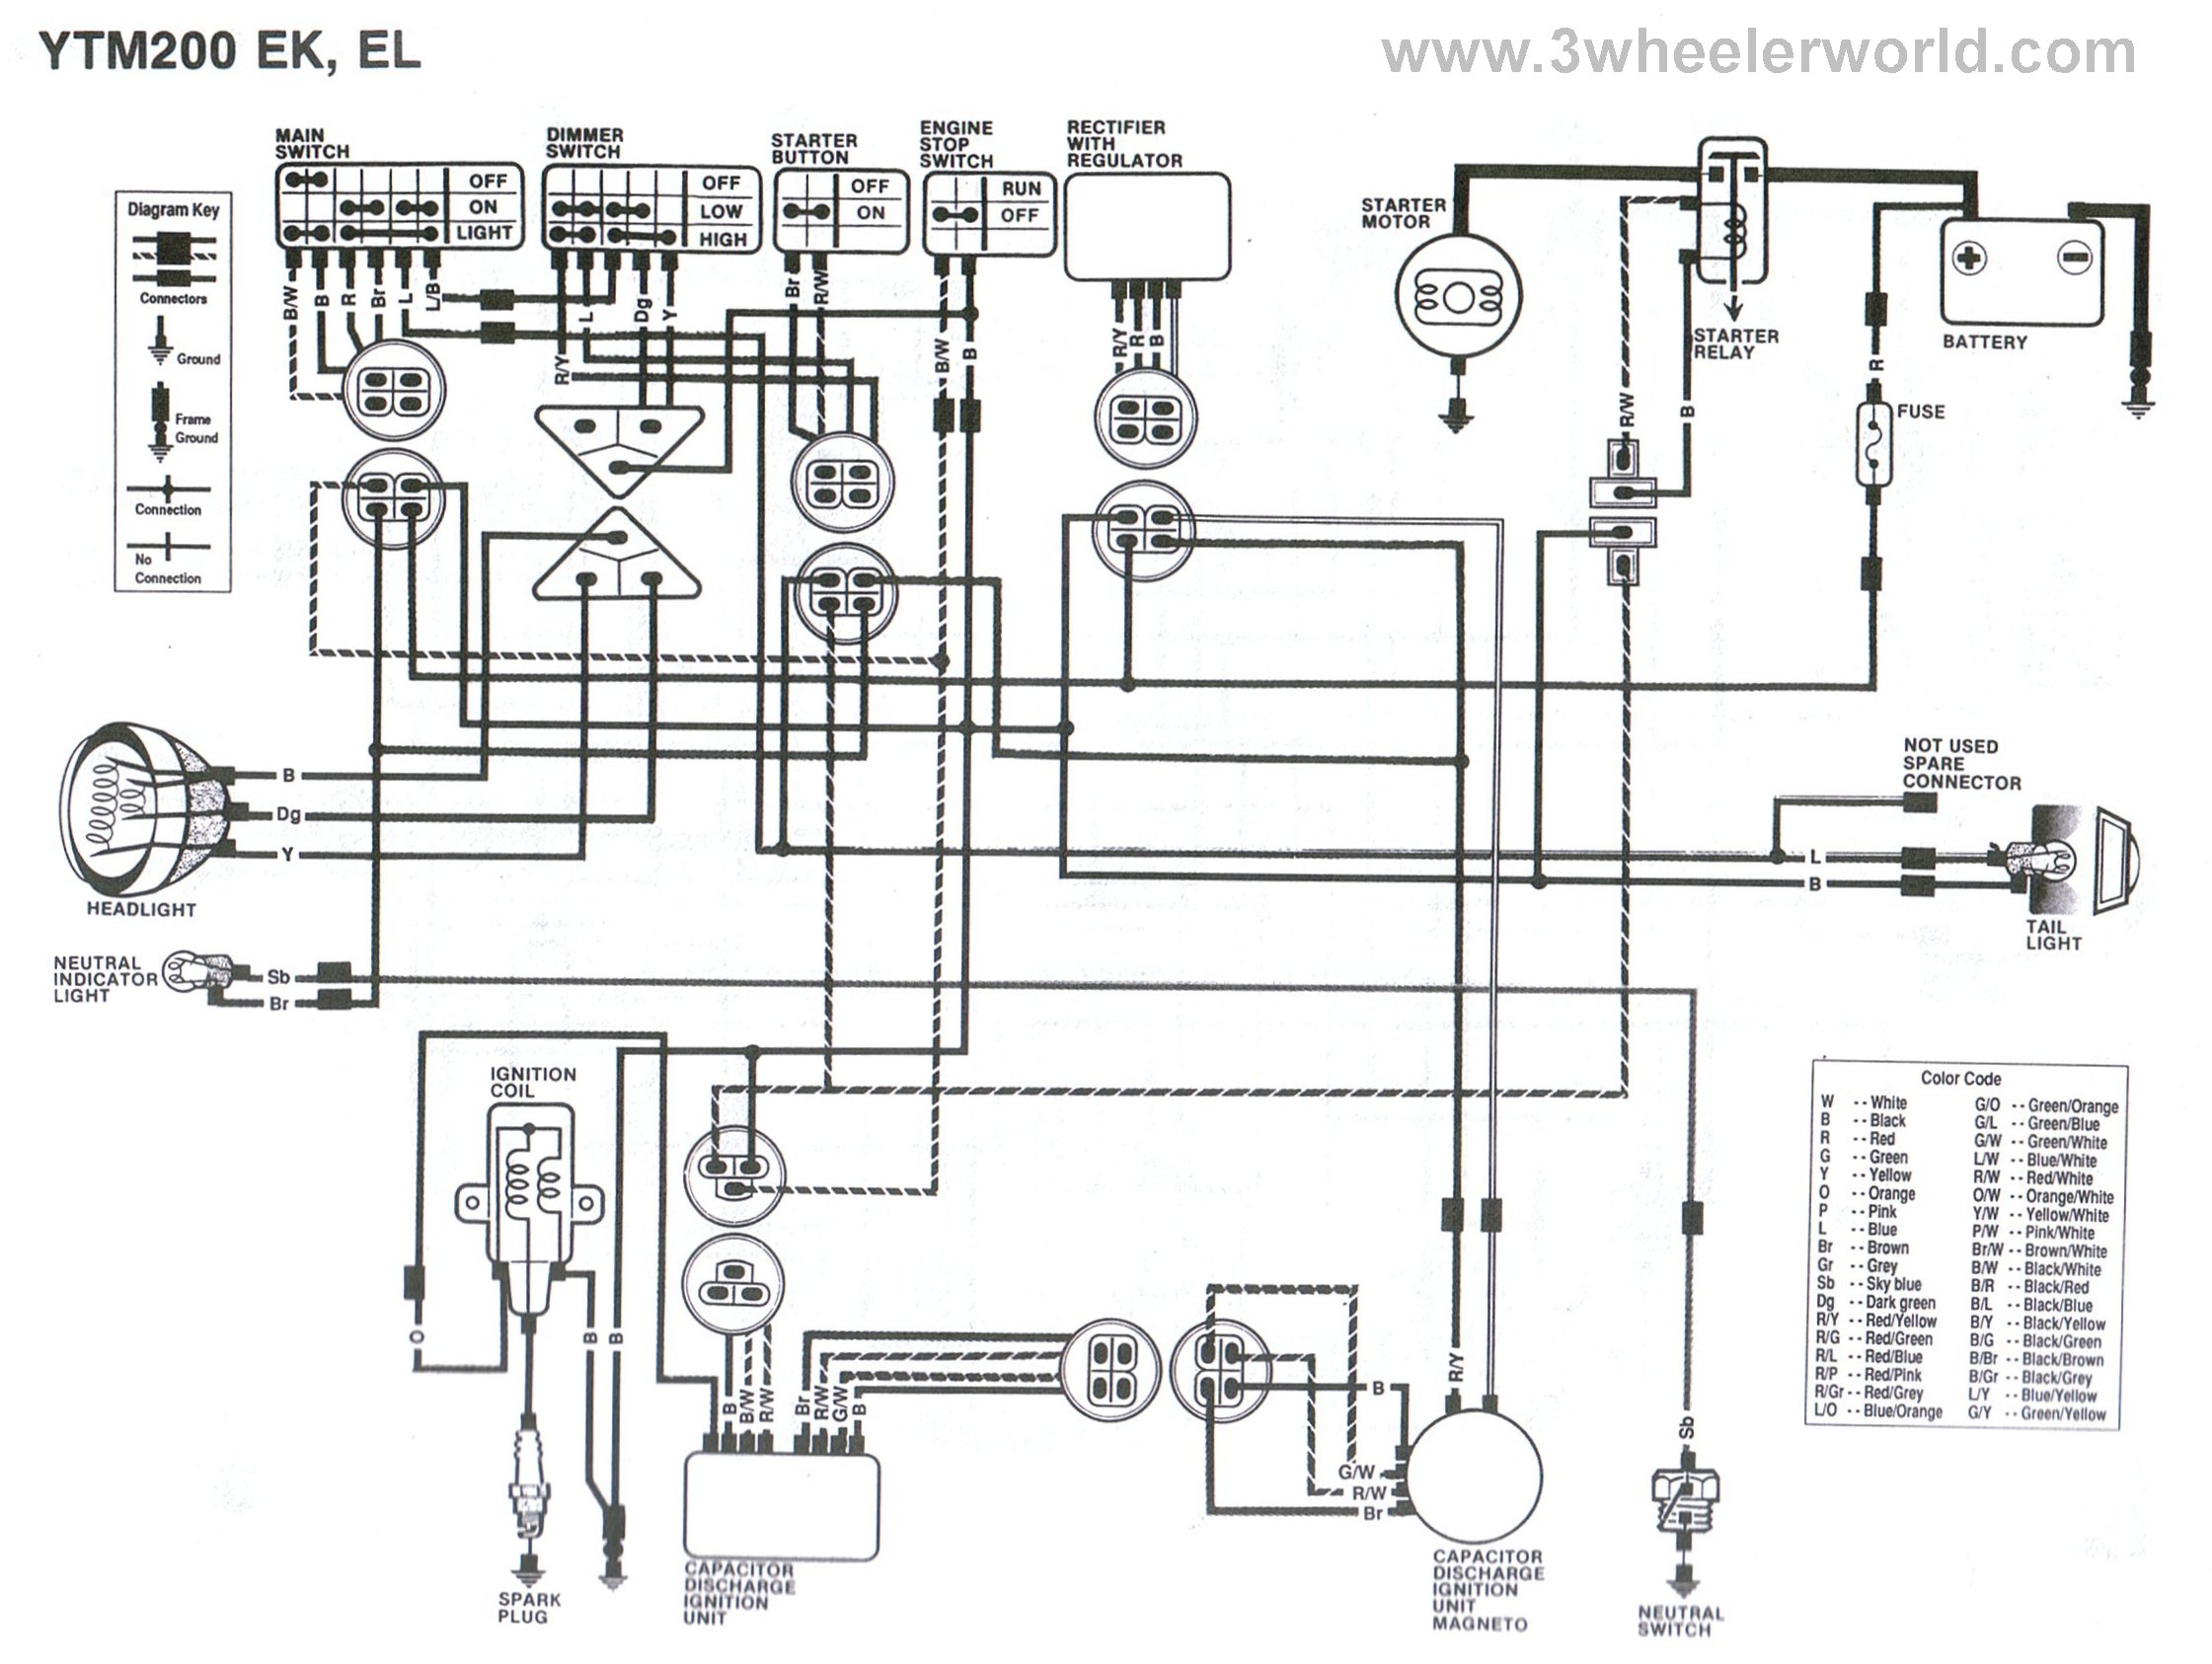 YTM200EKEL 3 wheeler world tech help yamaha wiring diagrams  at crackthecode.co